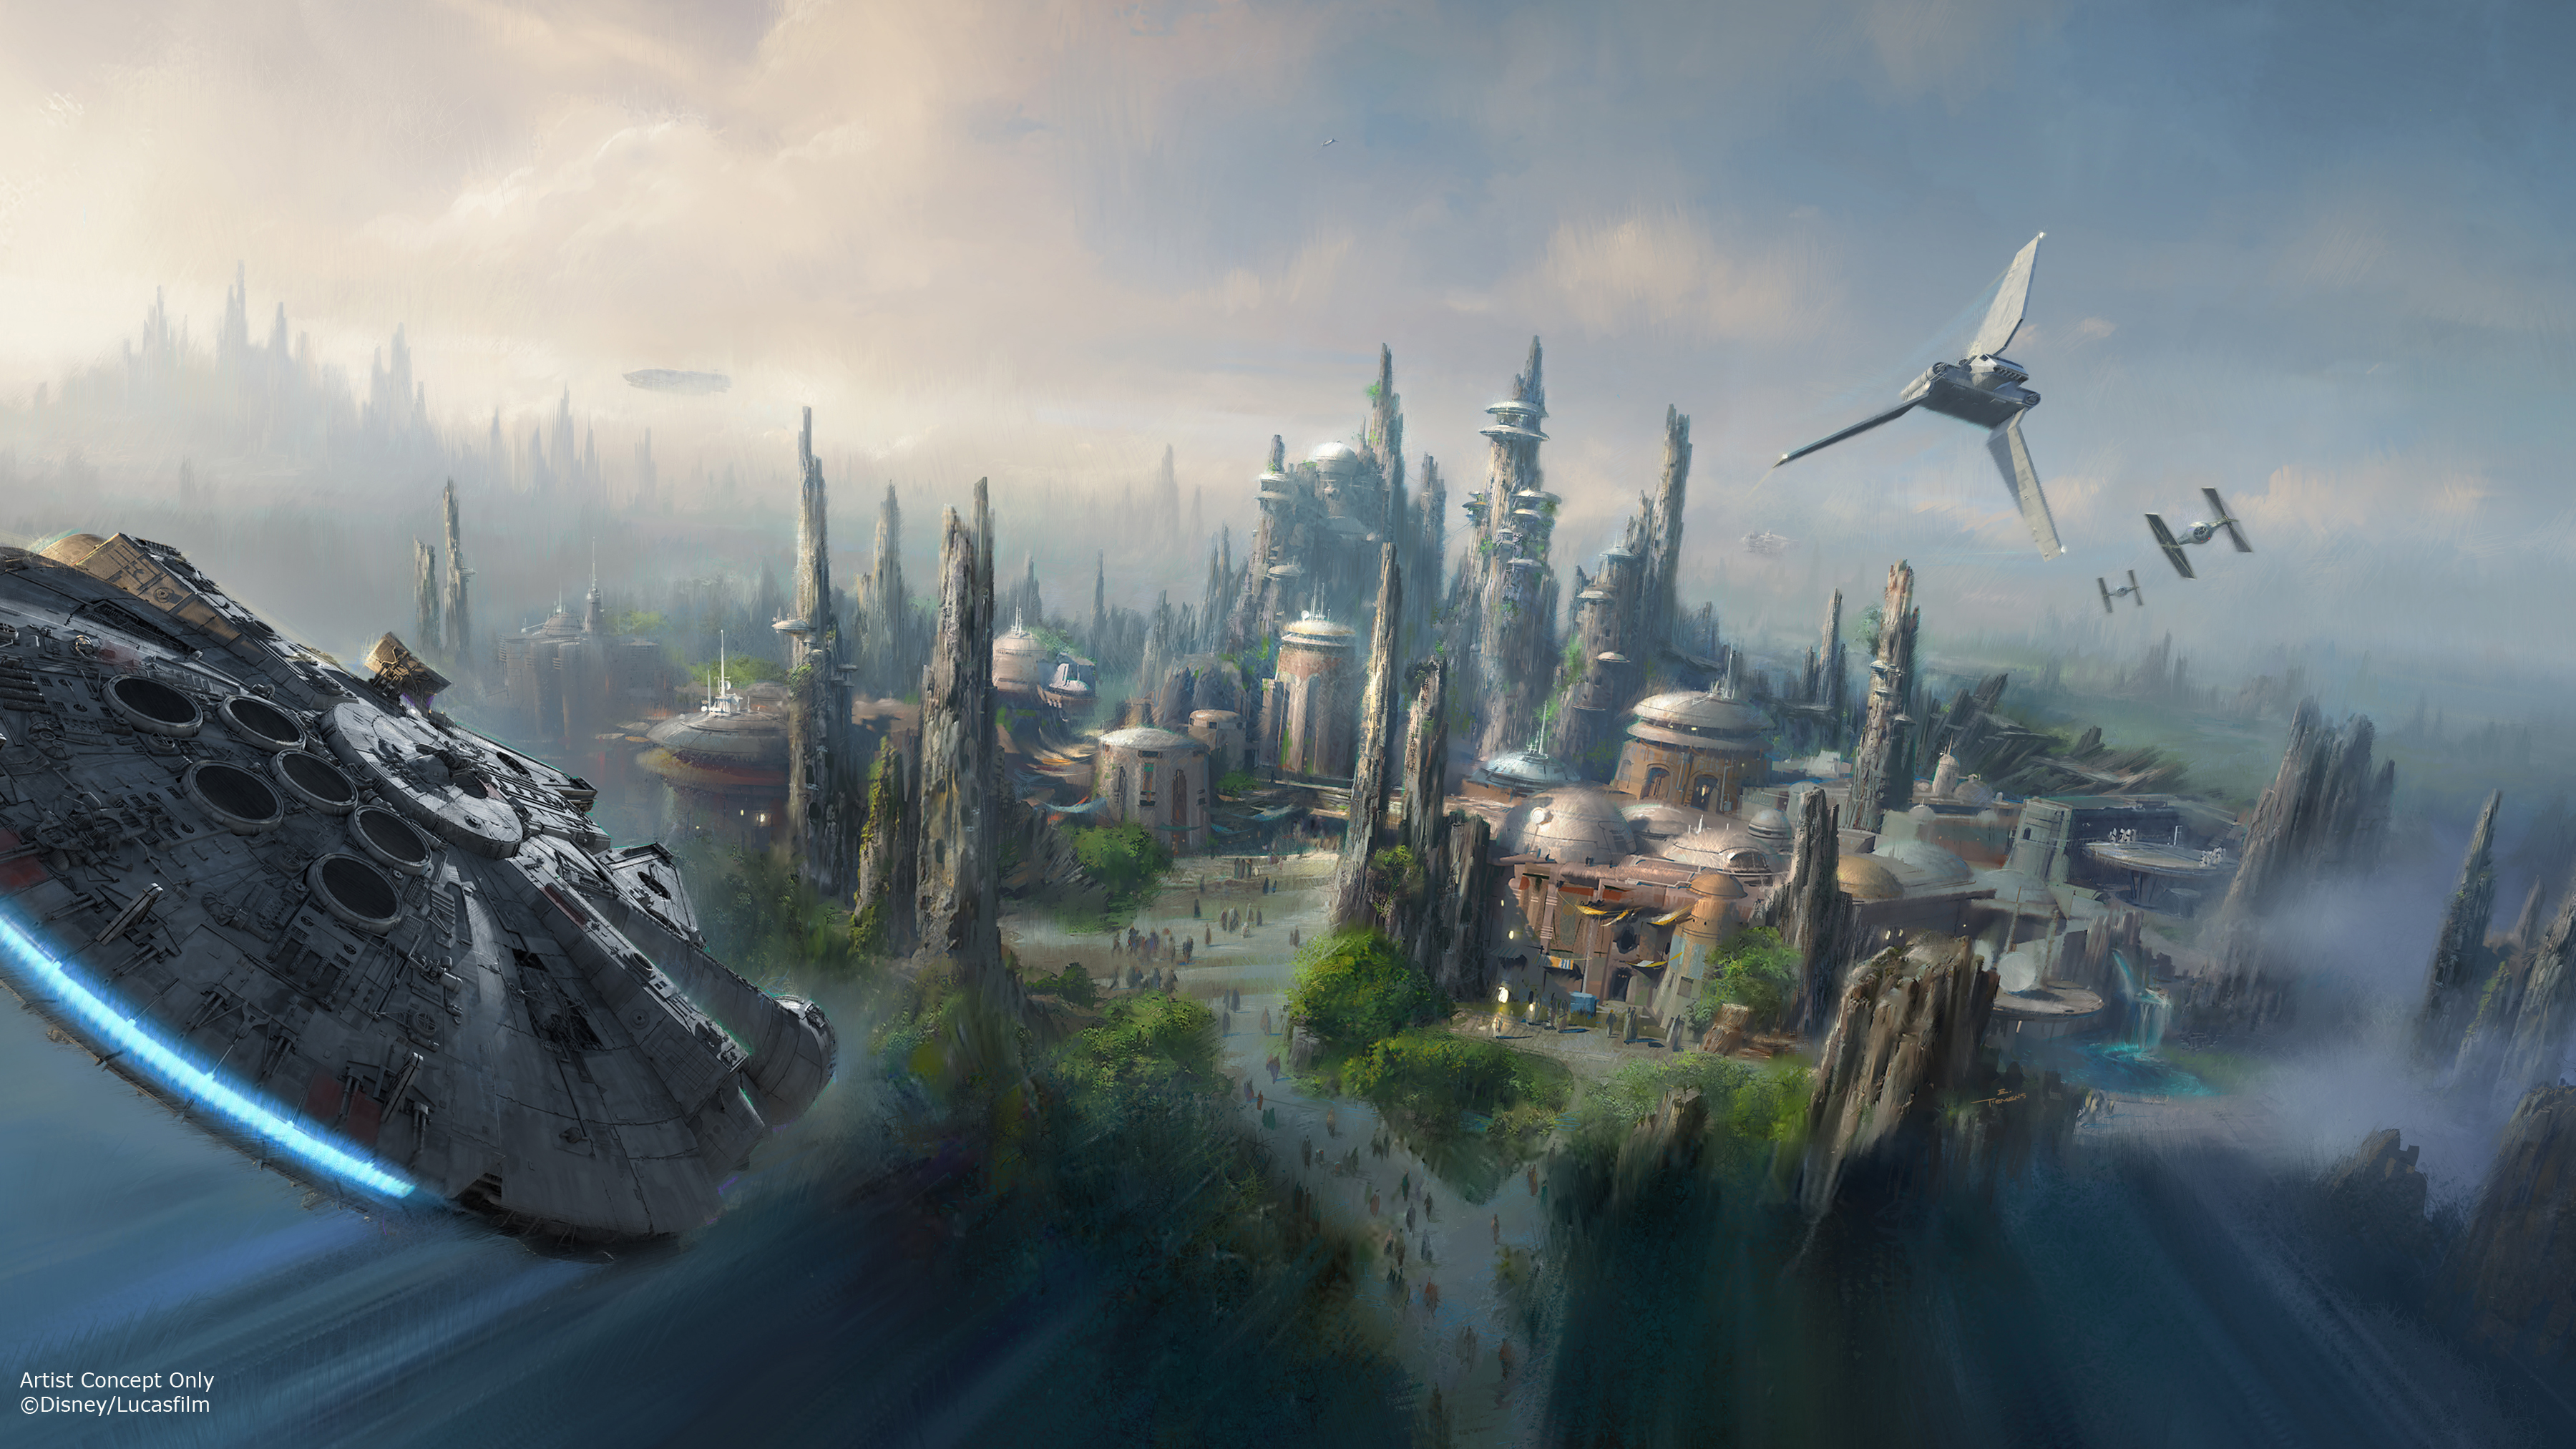 We've got a bird's-eye view of Star Wars Land at Disney World and we can't look away